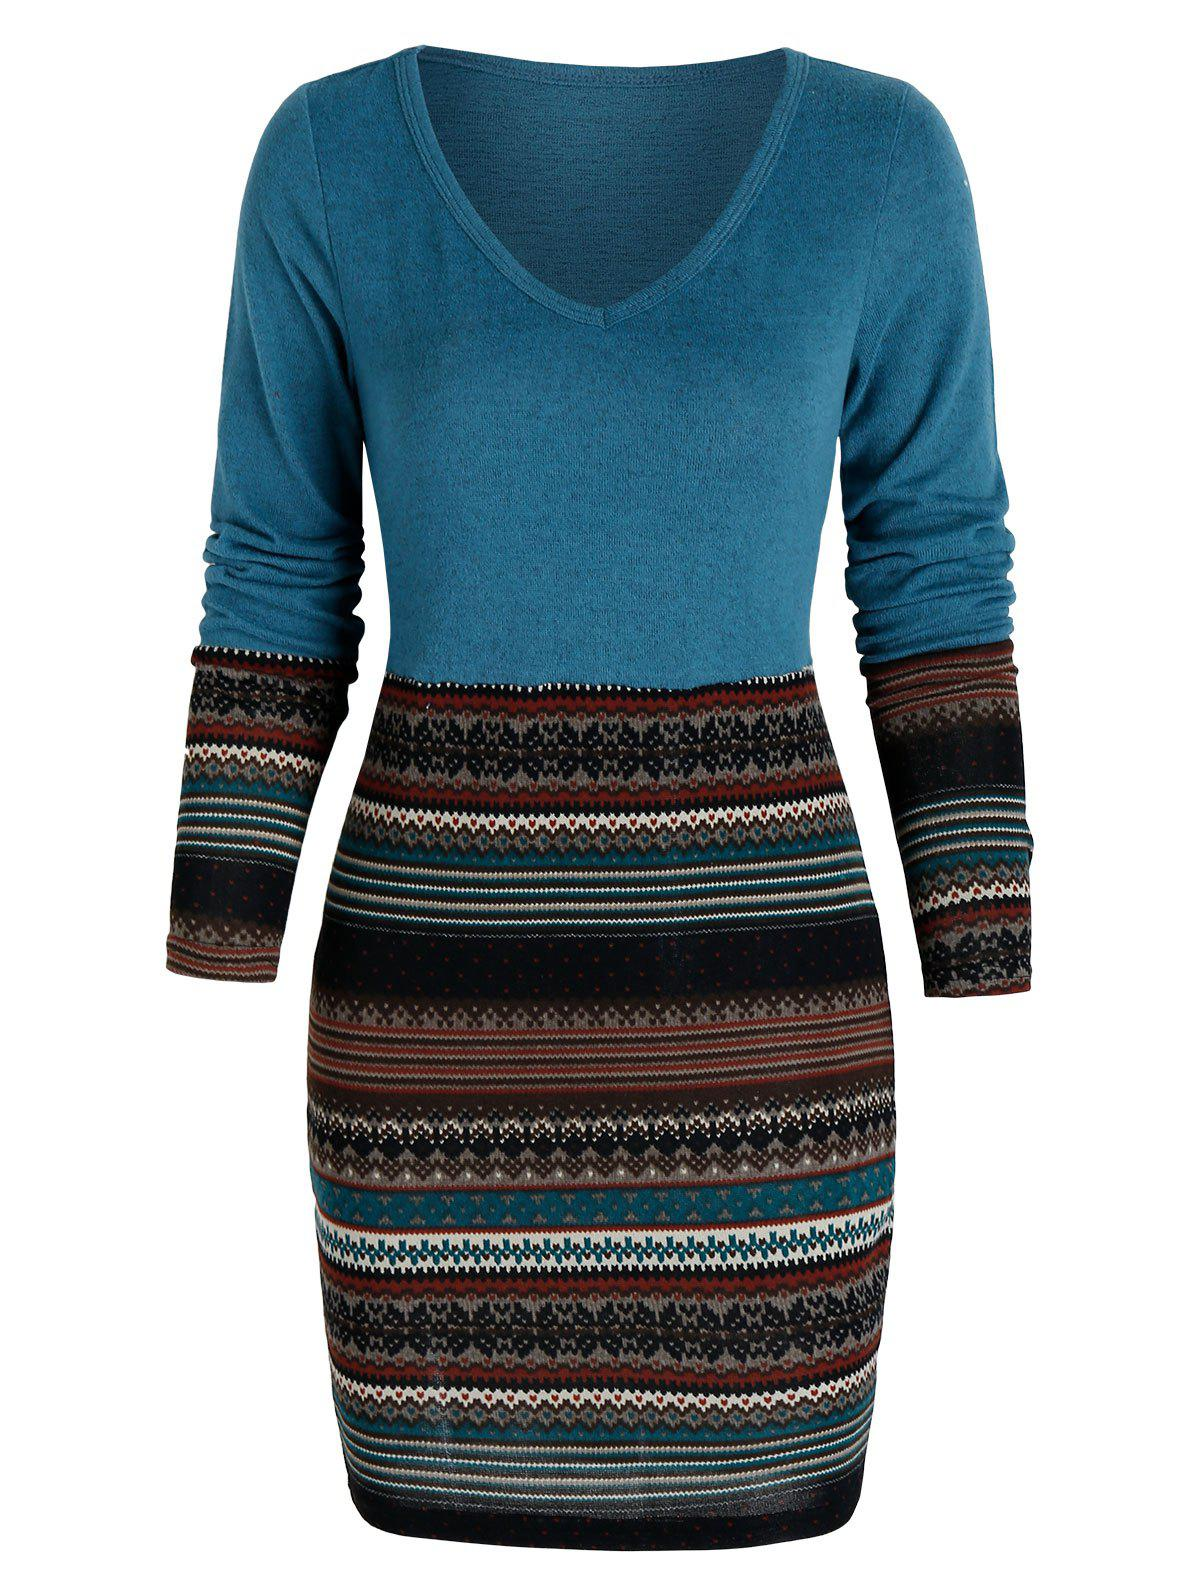 Tribal Print Mini Bodycon Dress - PEACOCK BLUE L